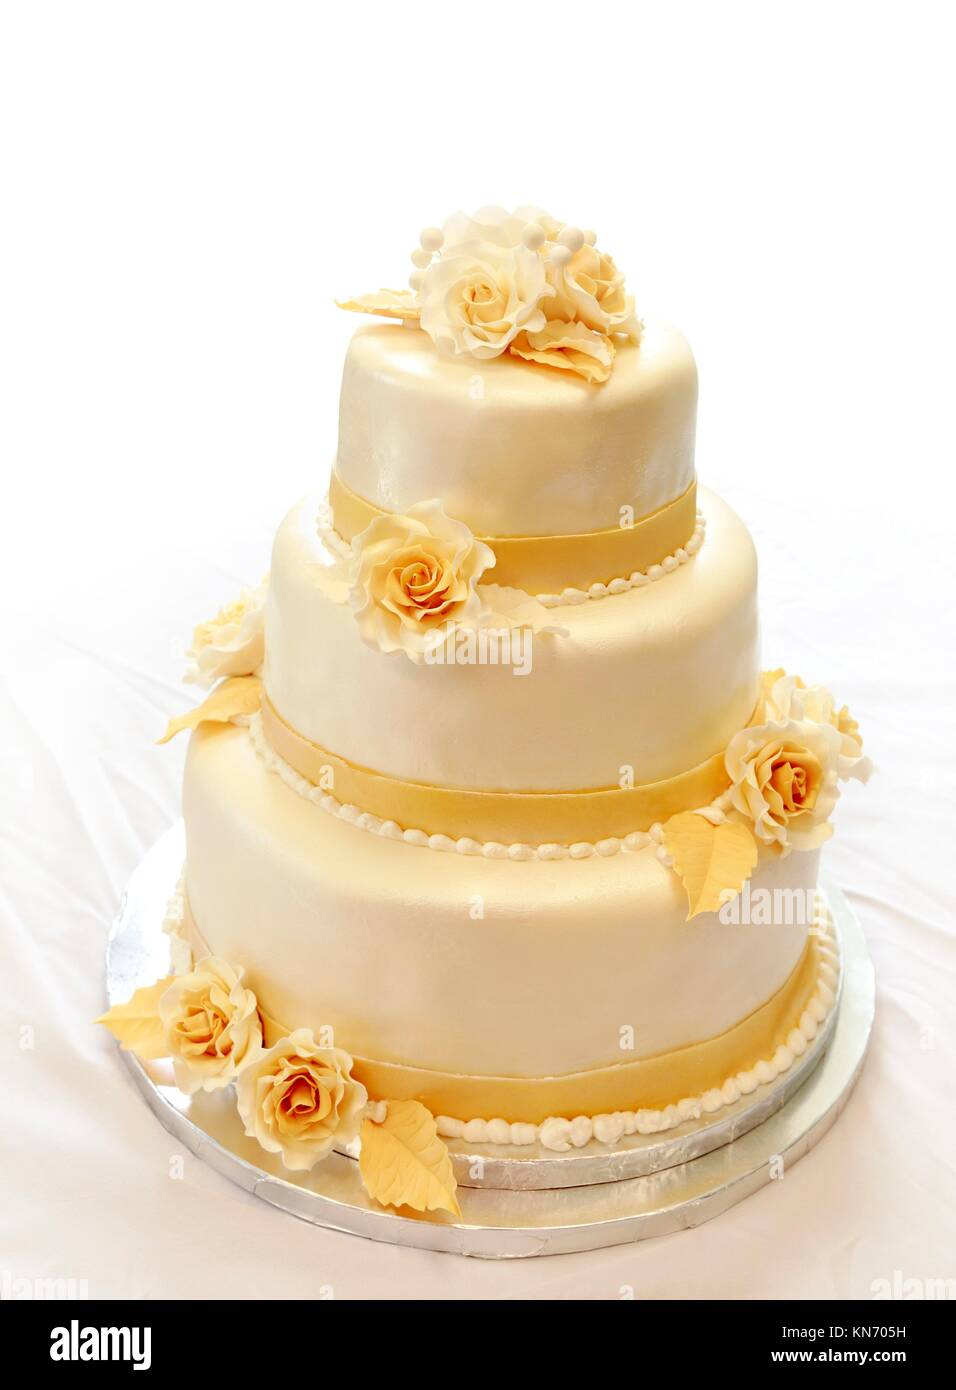 Wedding cake, on white (not isolated) background. 3-tiers covered in ...